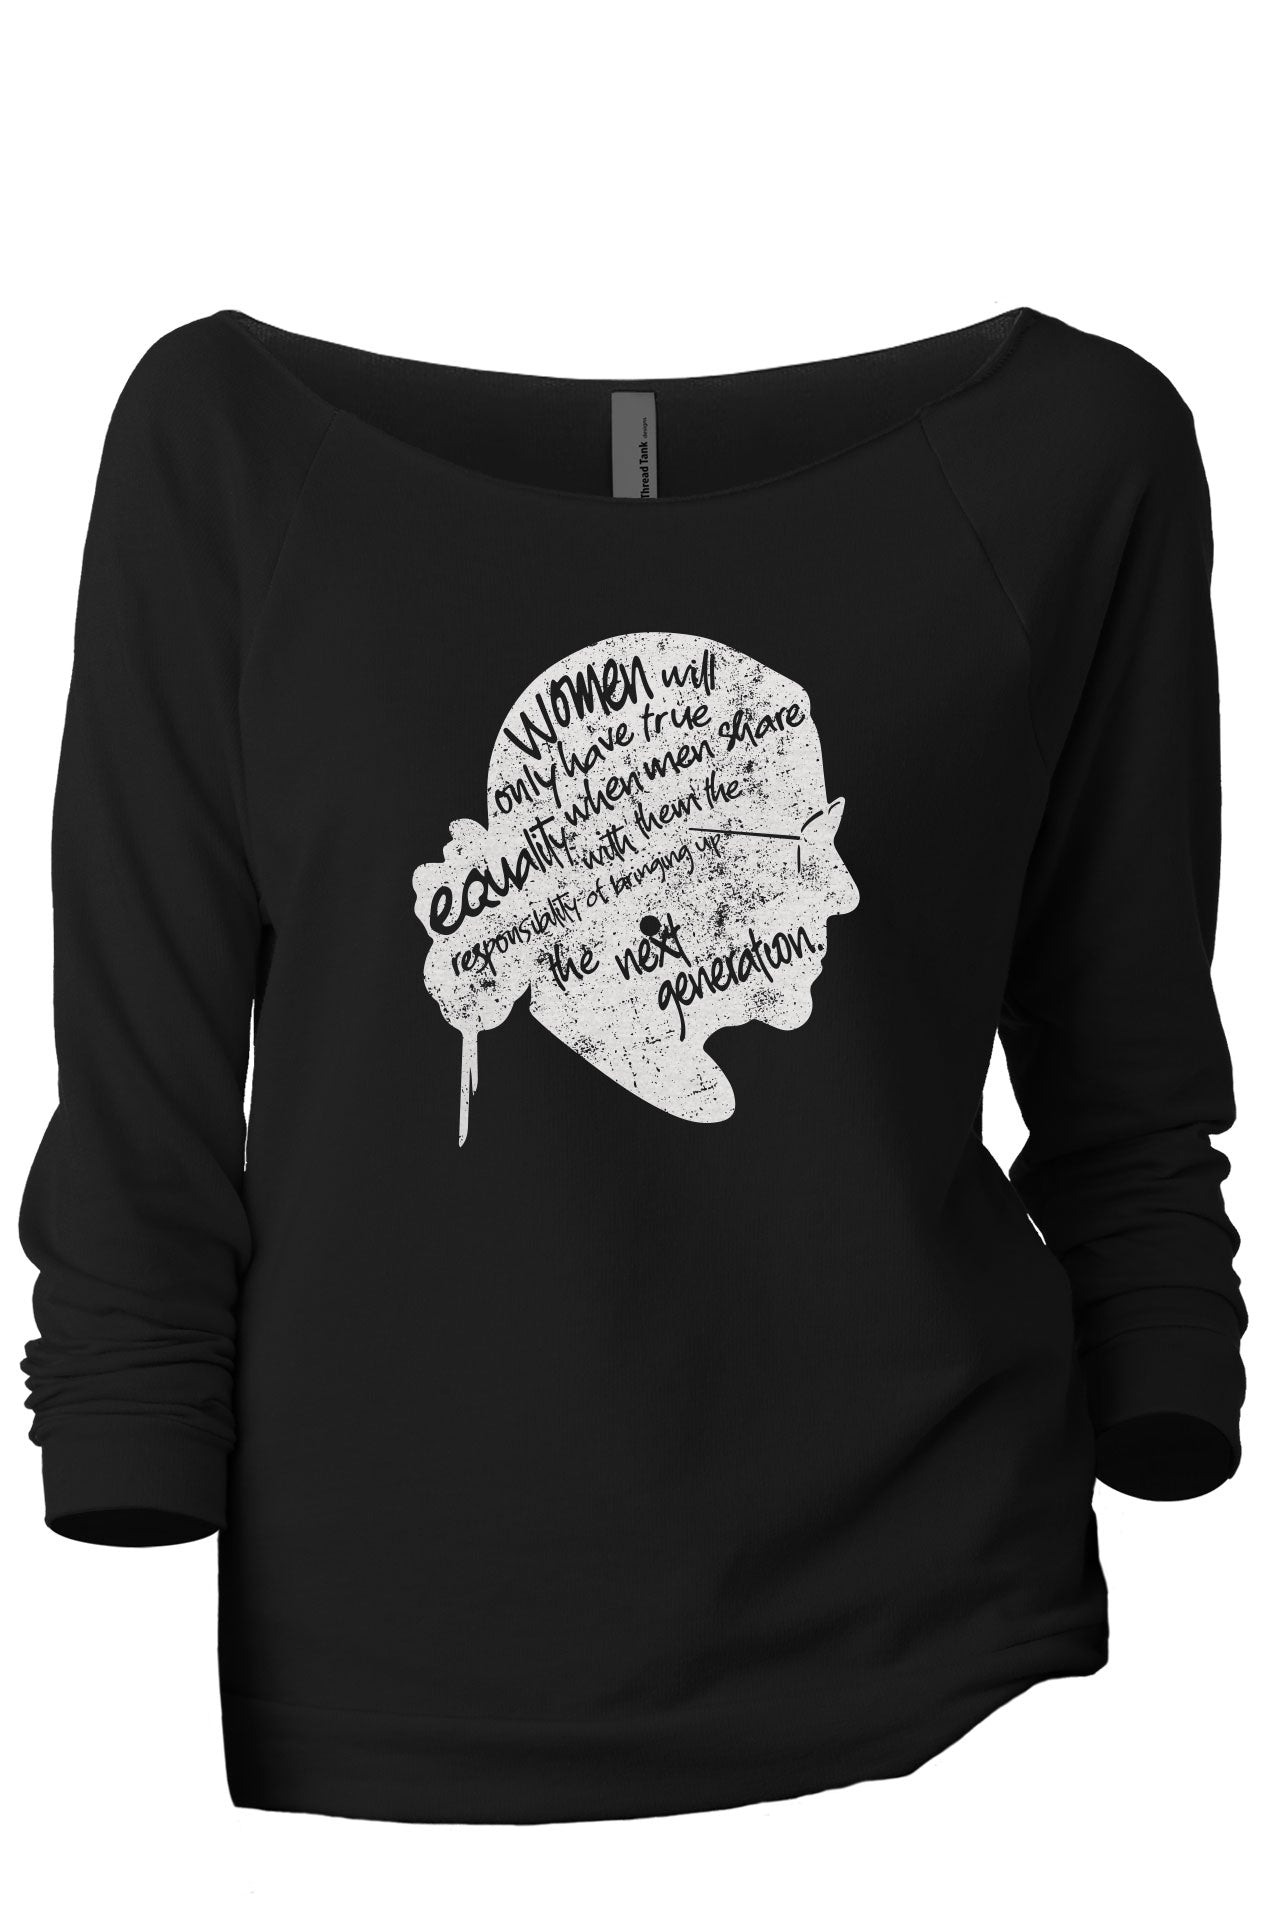 The Next Generation RBG Women's Graphic Printed Lightweight Slouchy 3/4 Sleeves Sweatshirt Sport Black